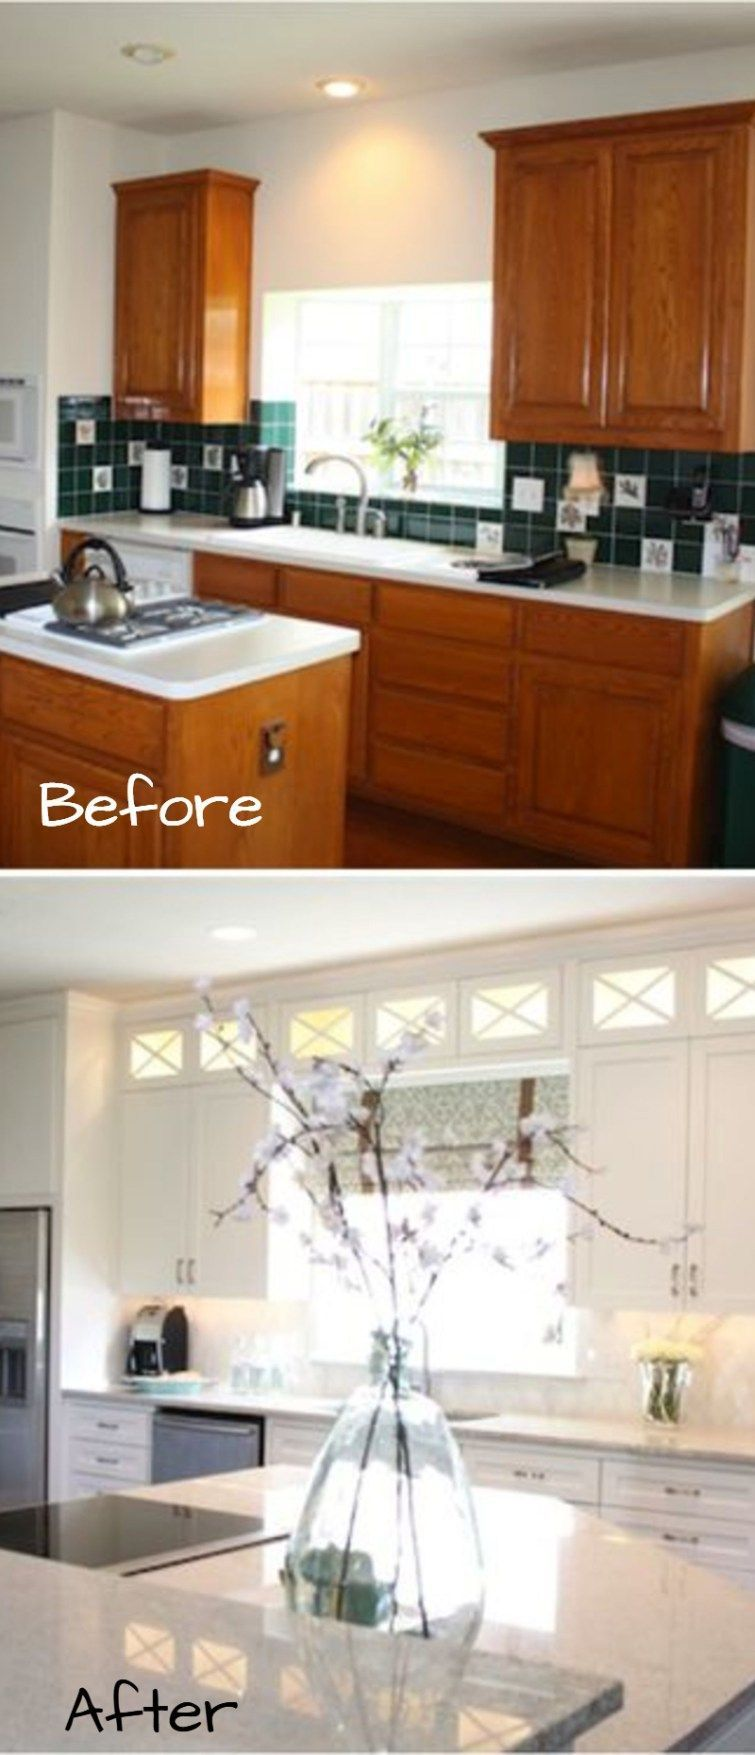 Small kitchen remodel before and after pictures of small